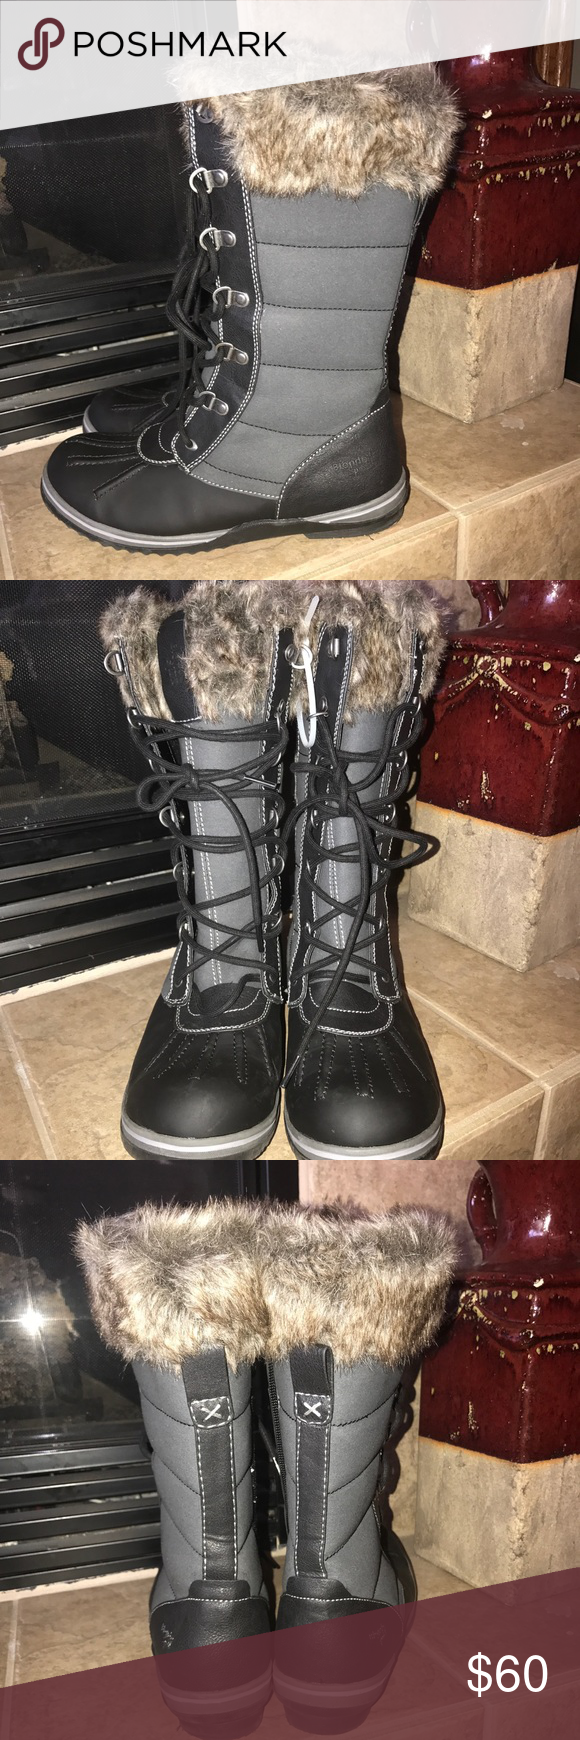 249a6fcfa Blondo Sport Sophia Winter Boot In excellent condition worn once blondo  Shoes Winter & Rain Boots